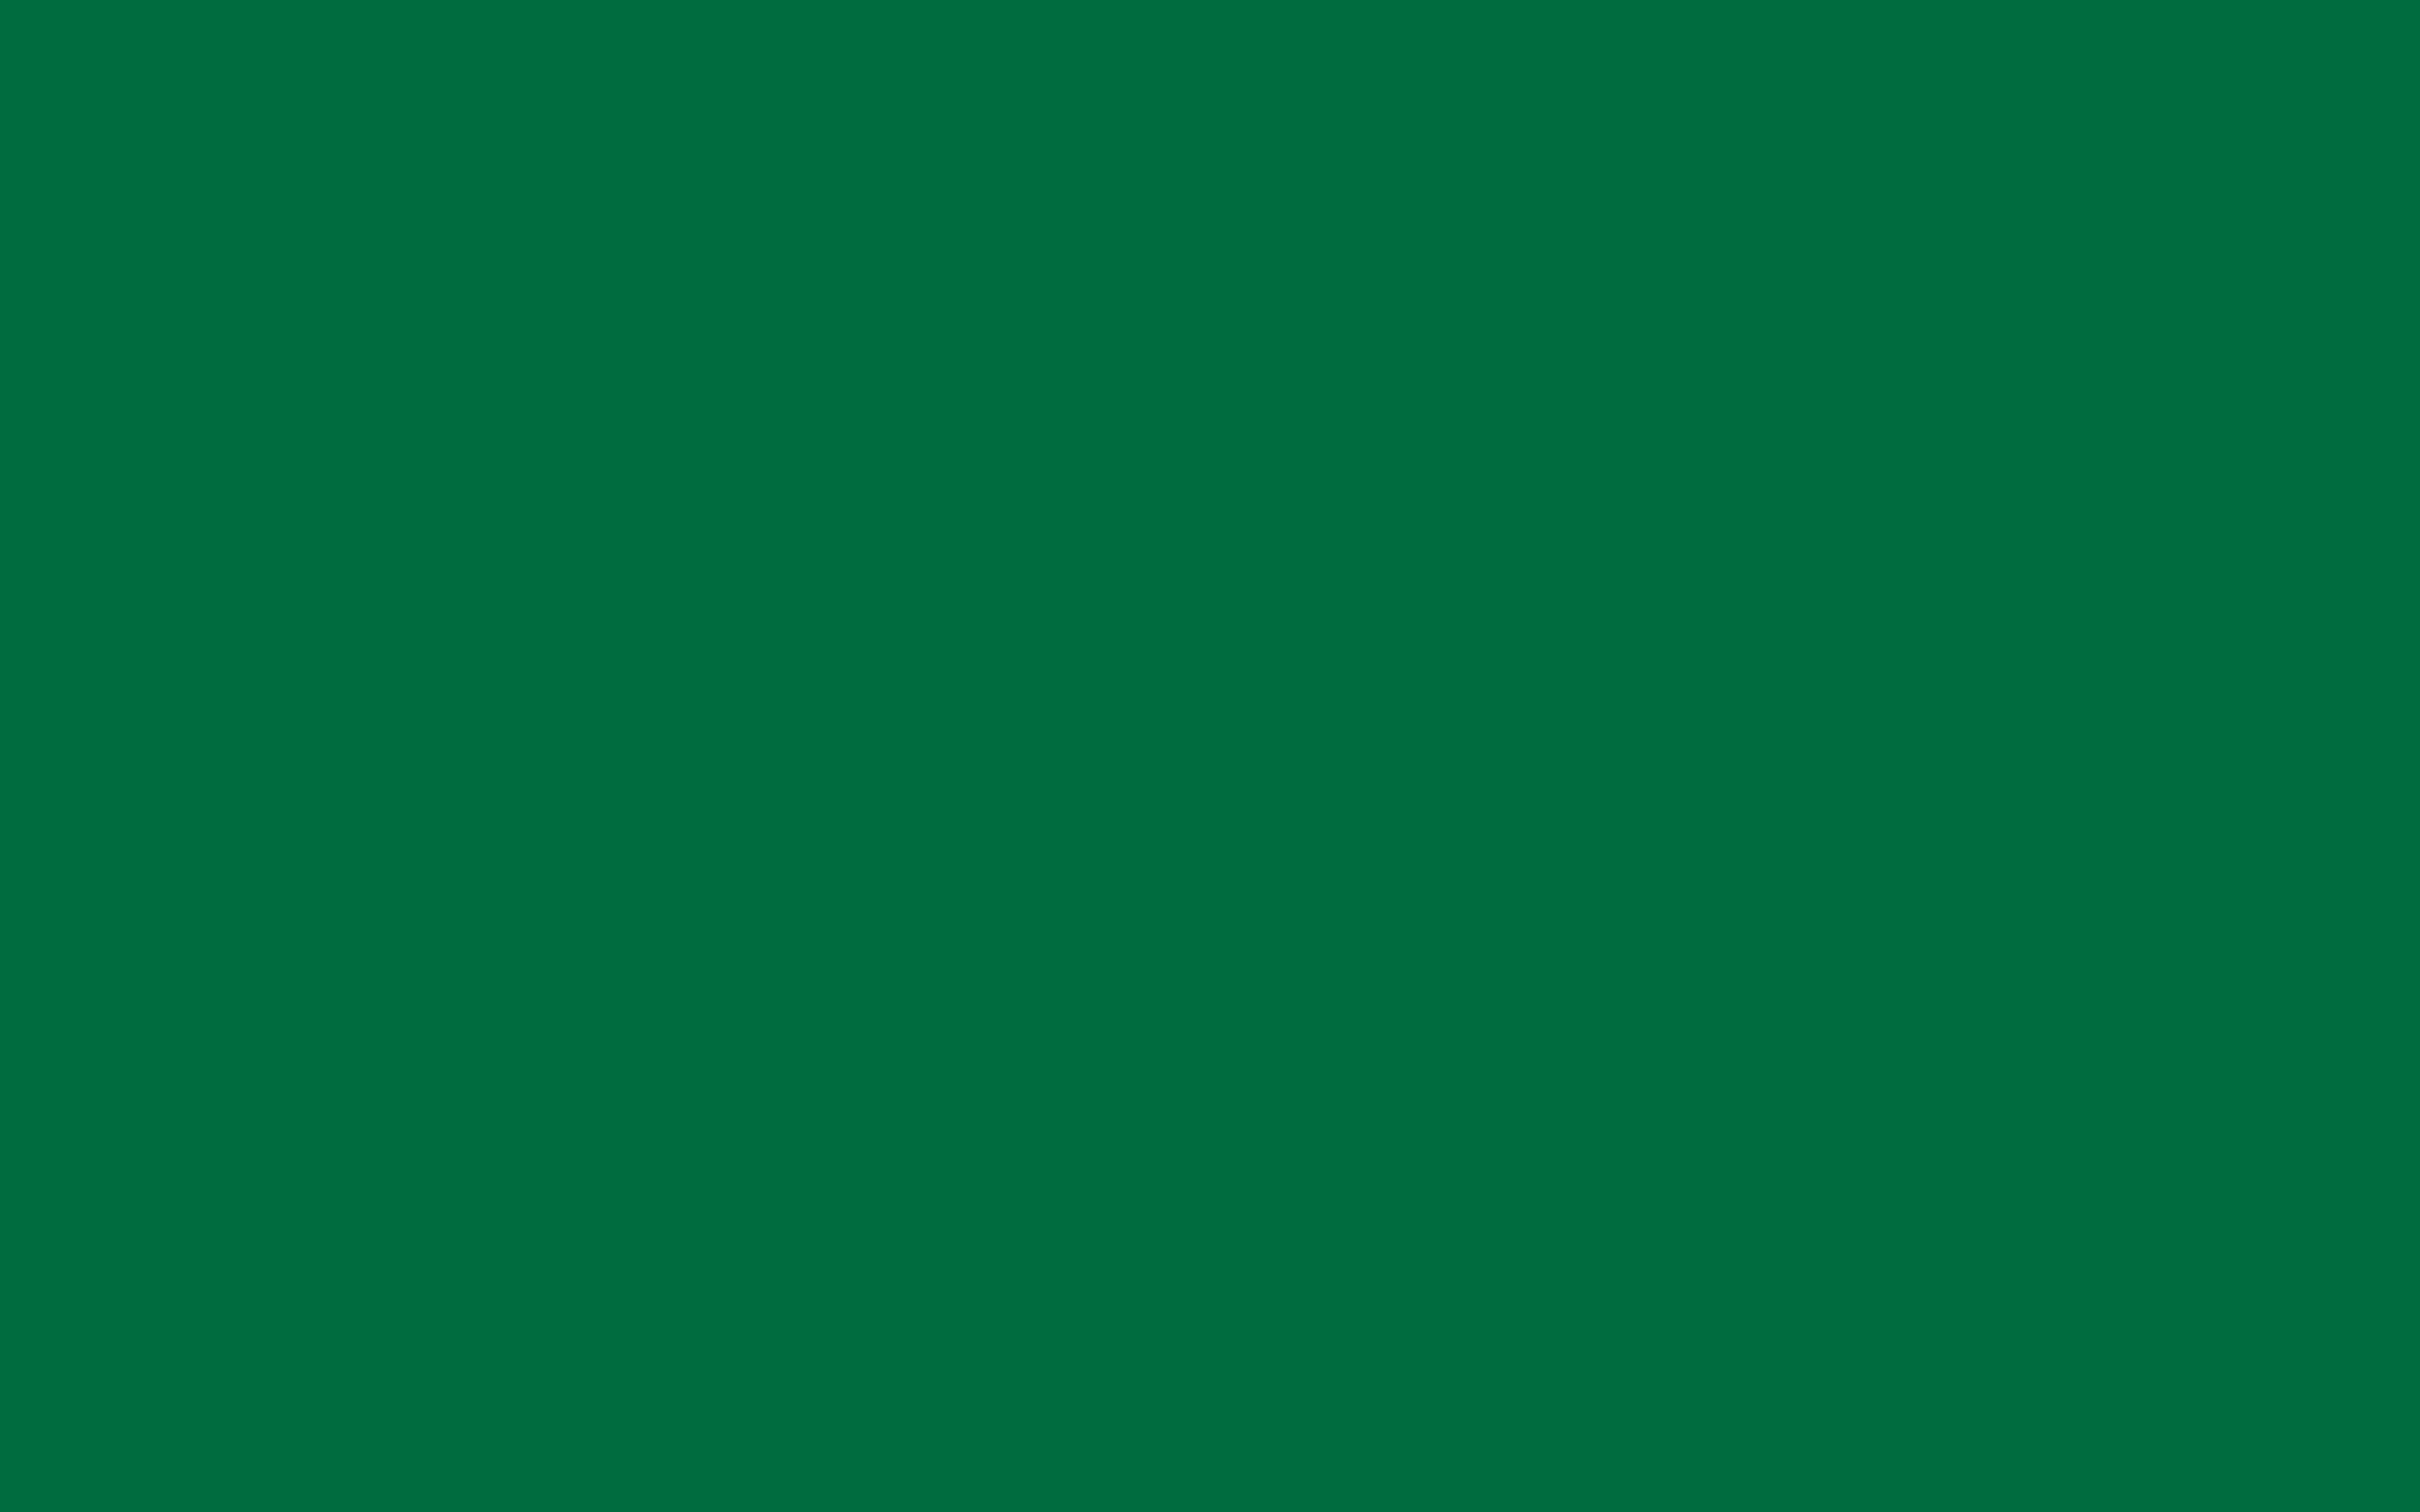 solid green background related - photo #19